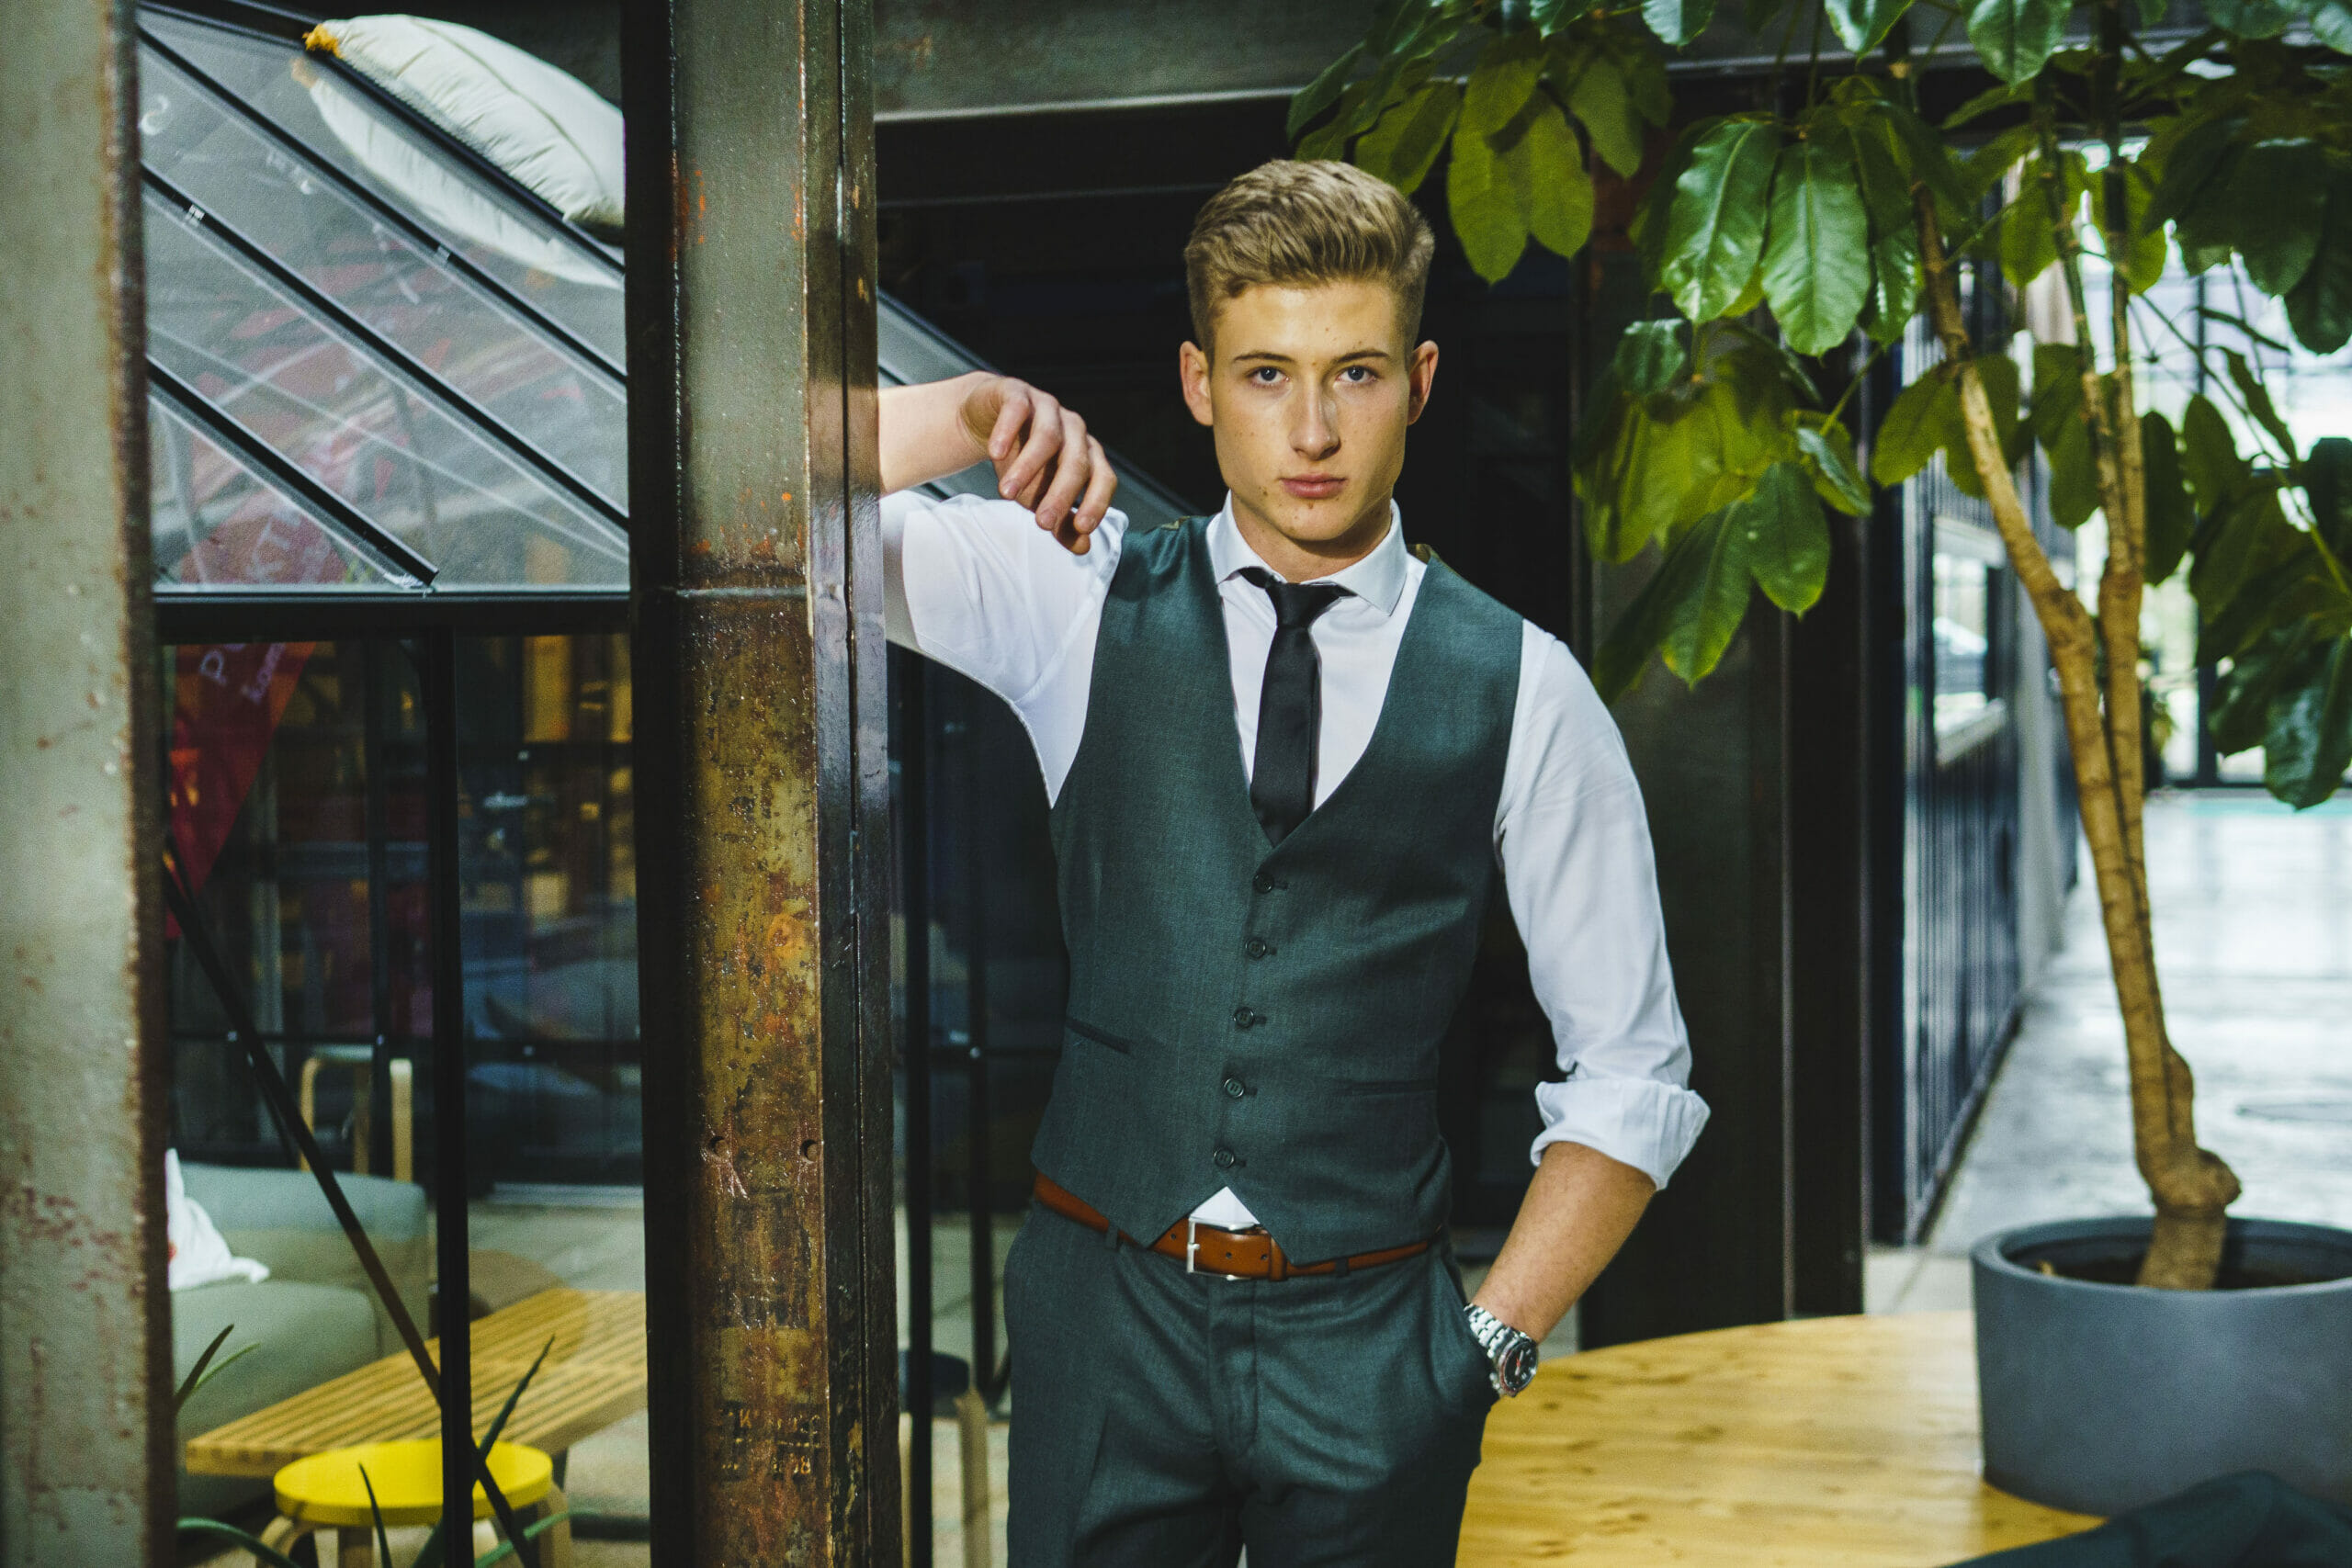 Suit Fashion & Business Shooting